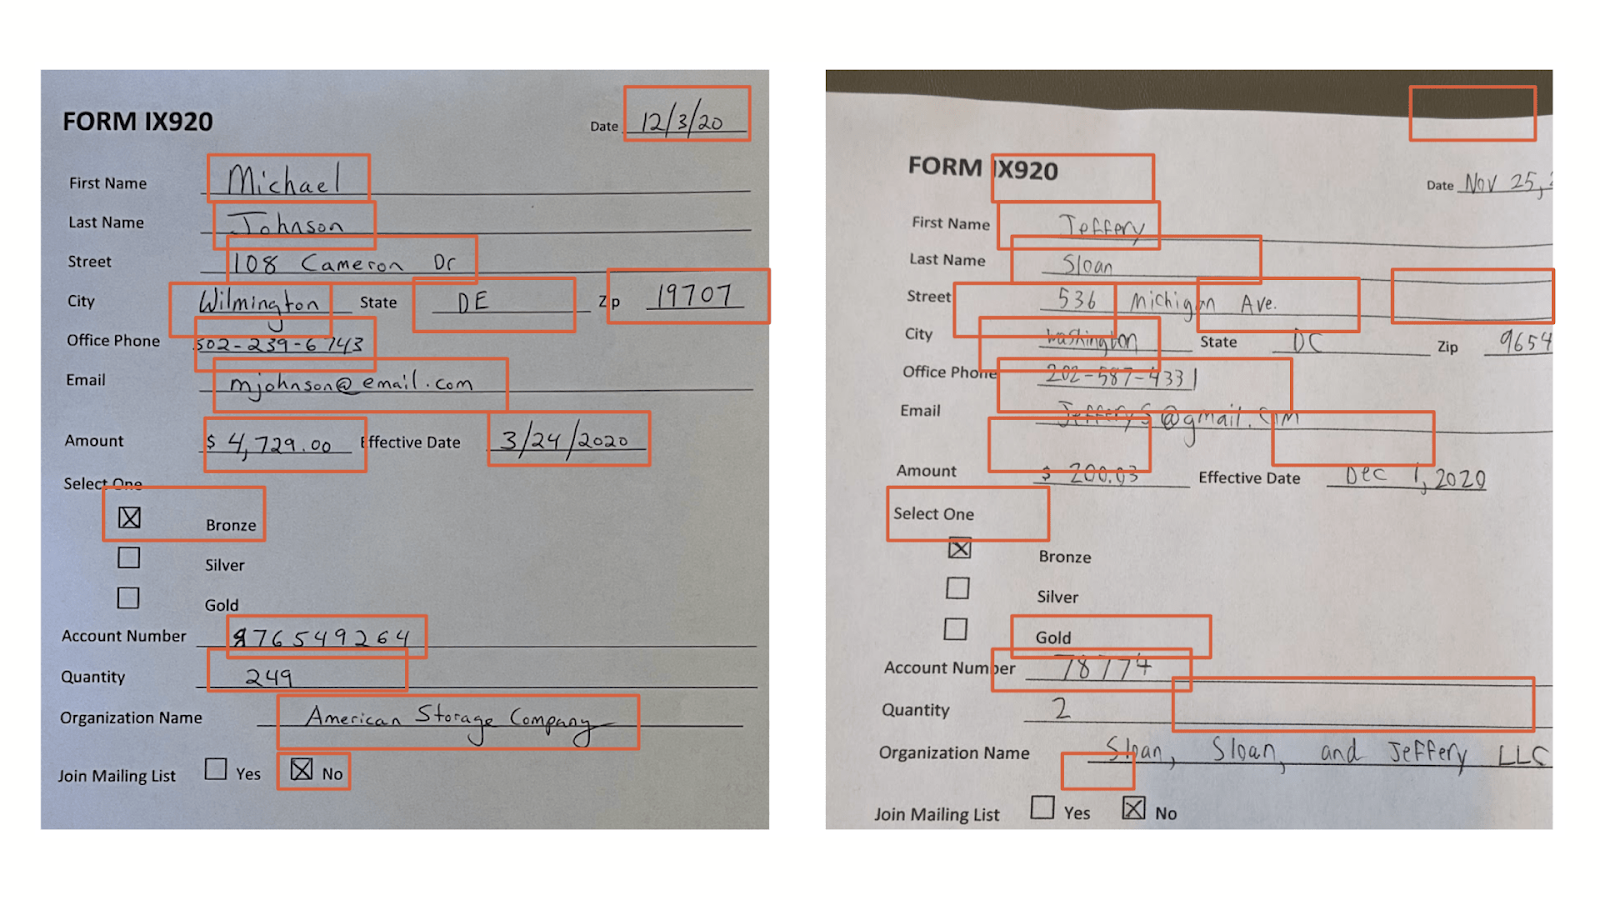 Two scanned forms. The form on the left has red box highlights around handwritten text, the form on the right has red boxes but they don't align with the handwritten text.